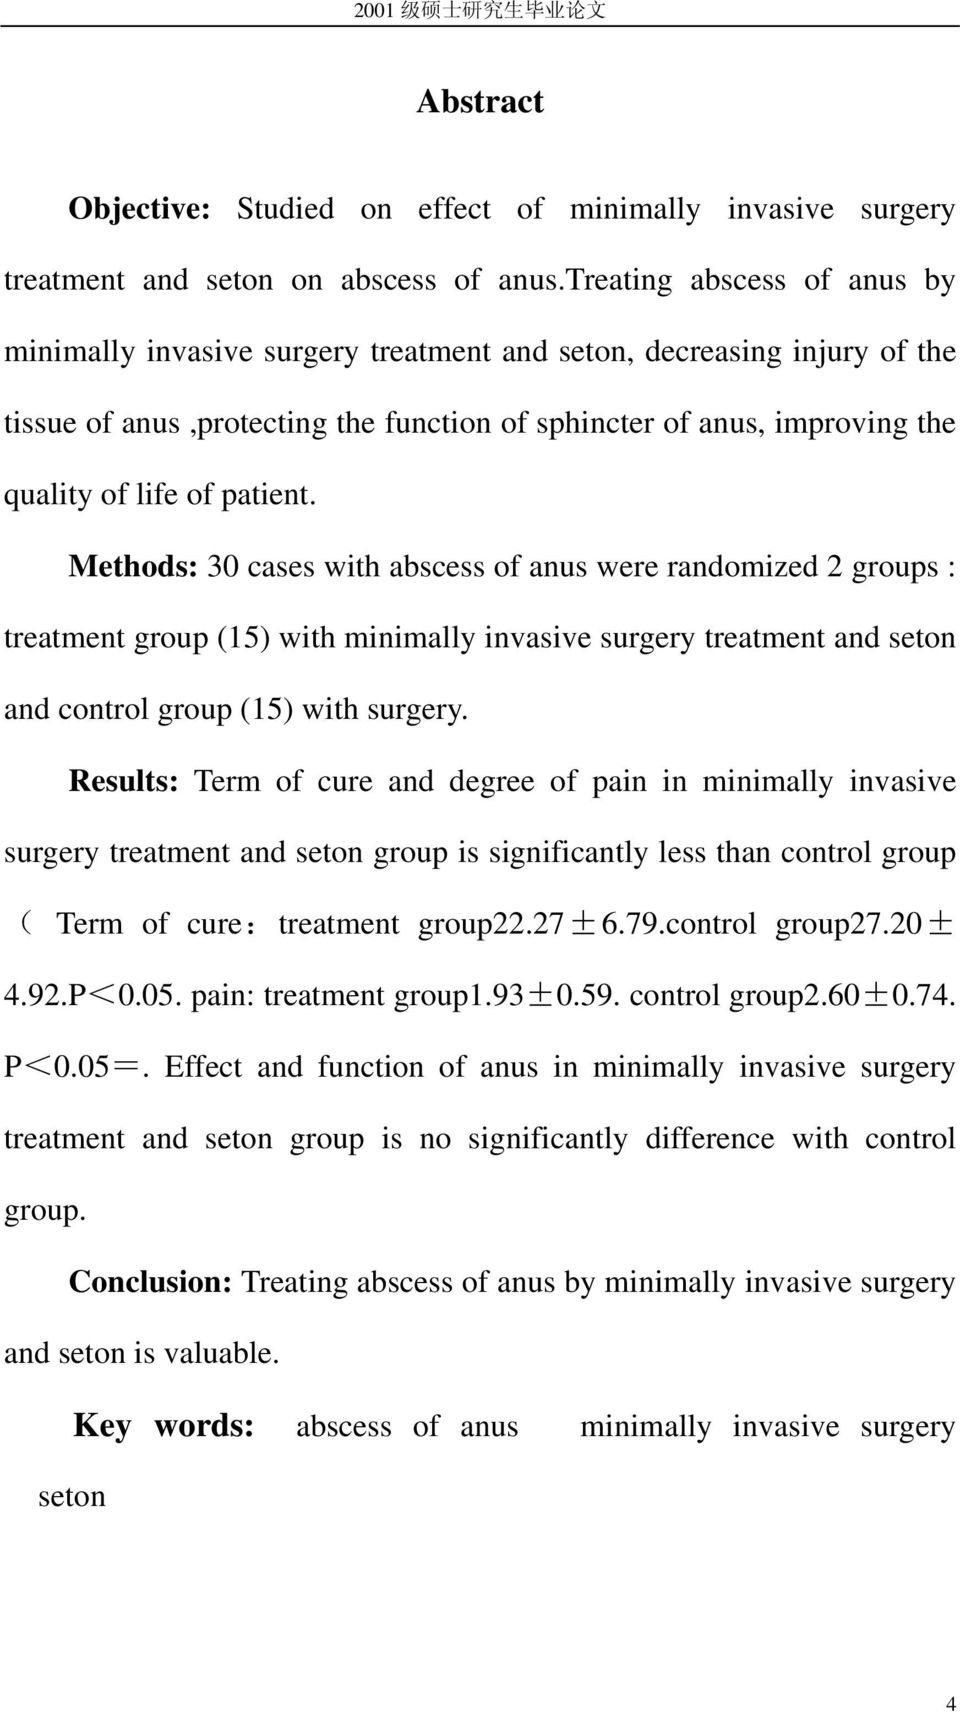 patient. Methods: 30 cases with abscess of anus were randomized 2 groups : treatment group (15) with minimally invasive surgery treatment and seton and control group (15) with surgery.